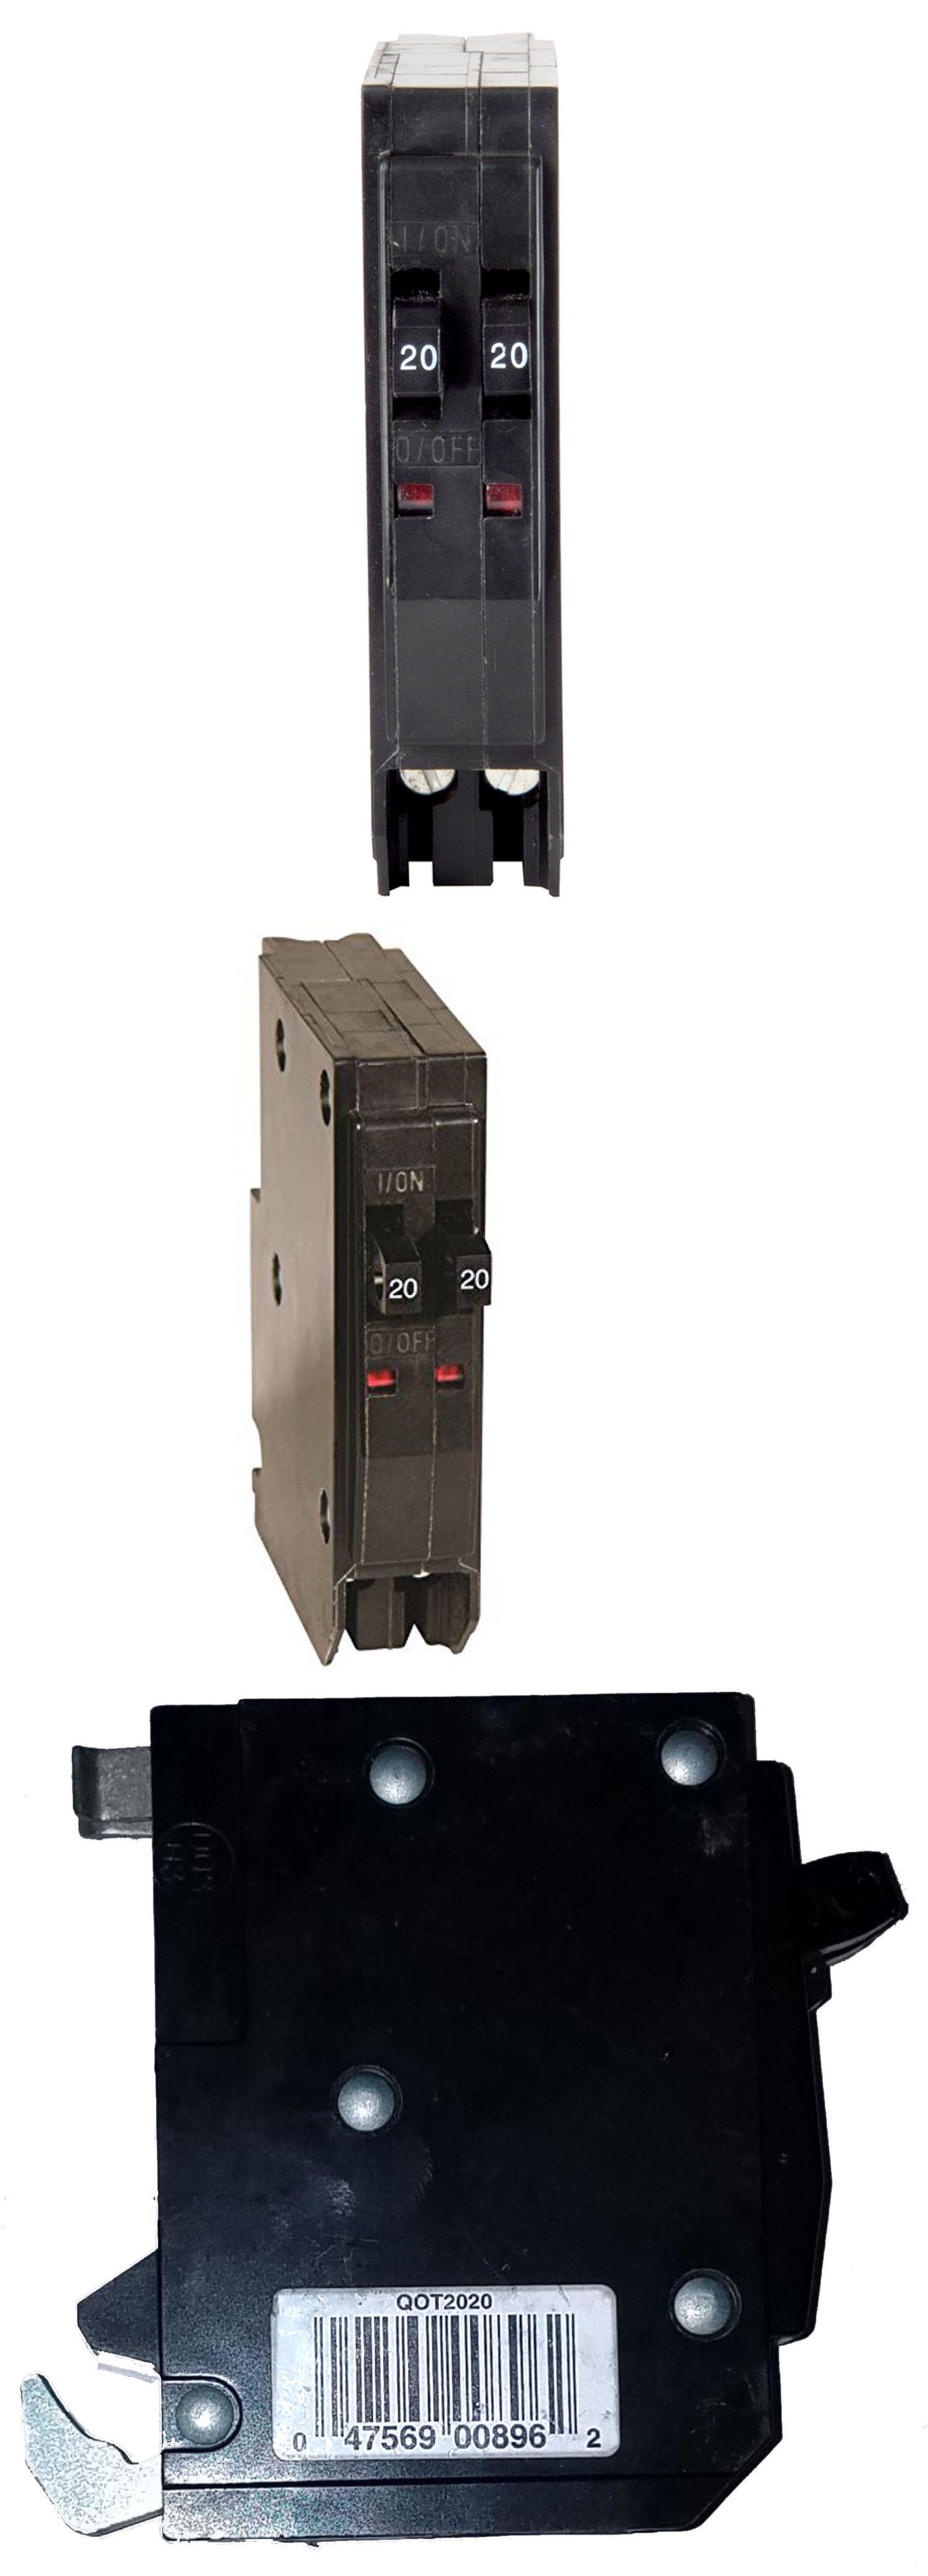 medium resolution of circuit breakers and fuse boxes 20596 square d qo 20 amp 1 pole tandem circuit breaker buy it now only 15 on ebay circuit breakers boxes square